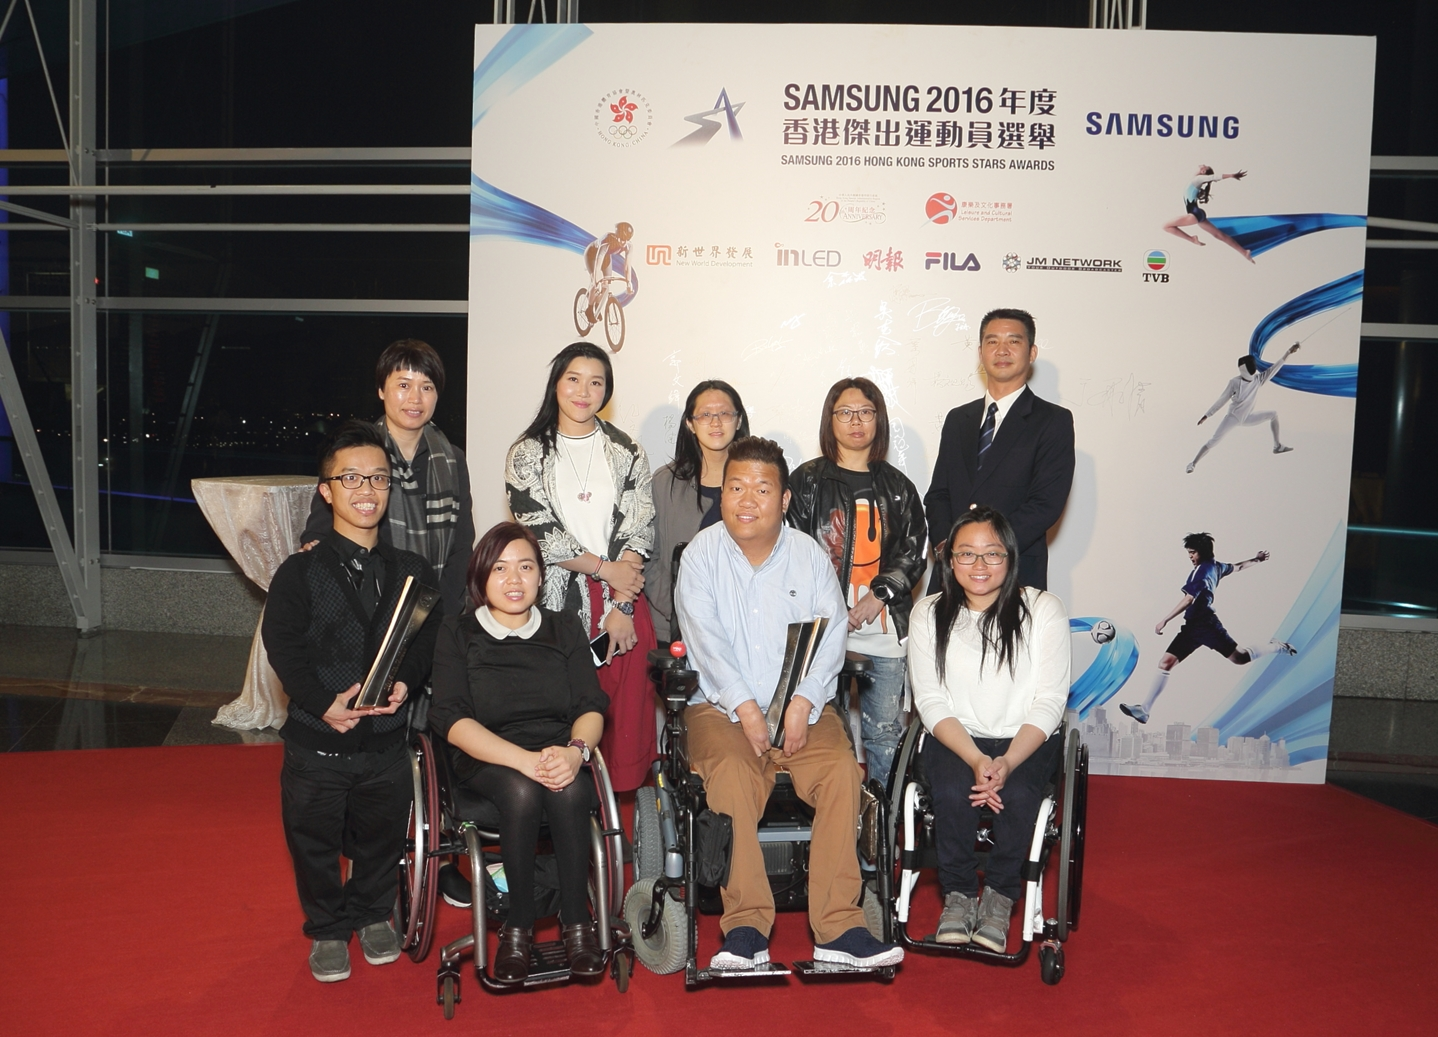 http://www.hkparalympic.org/web/index.php?page=&id=768